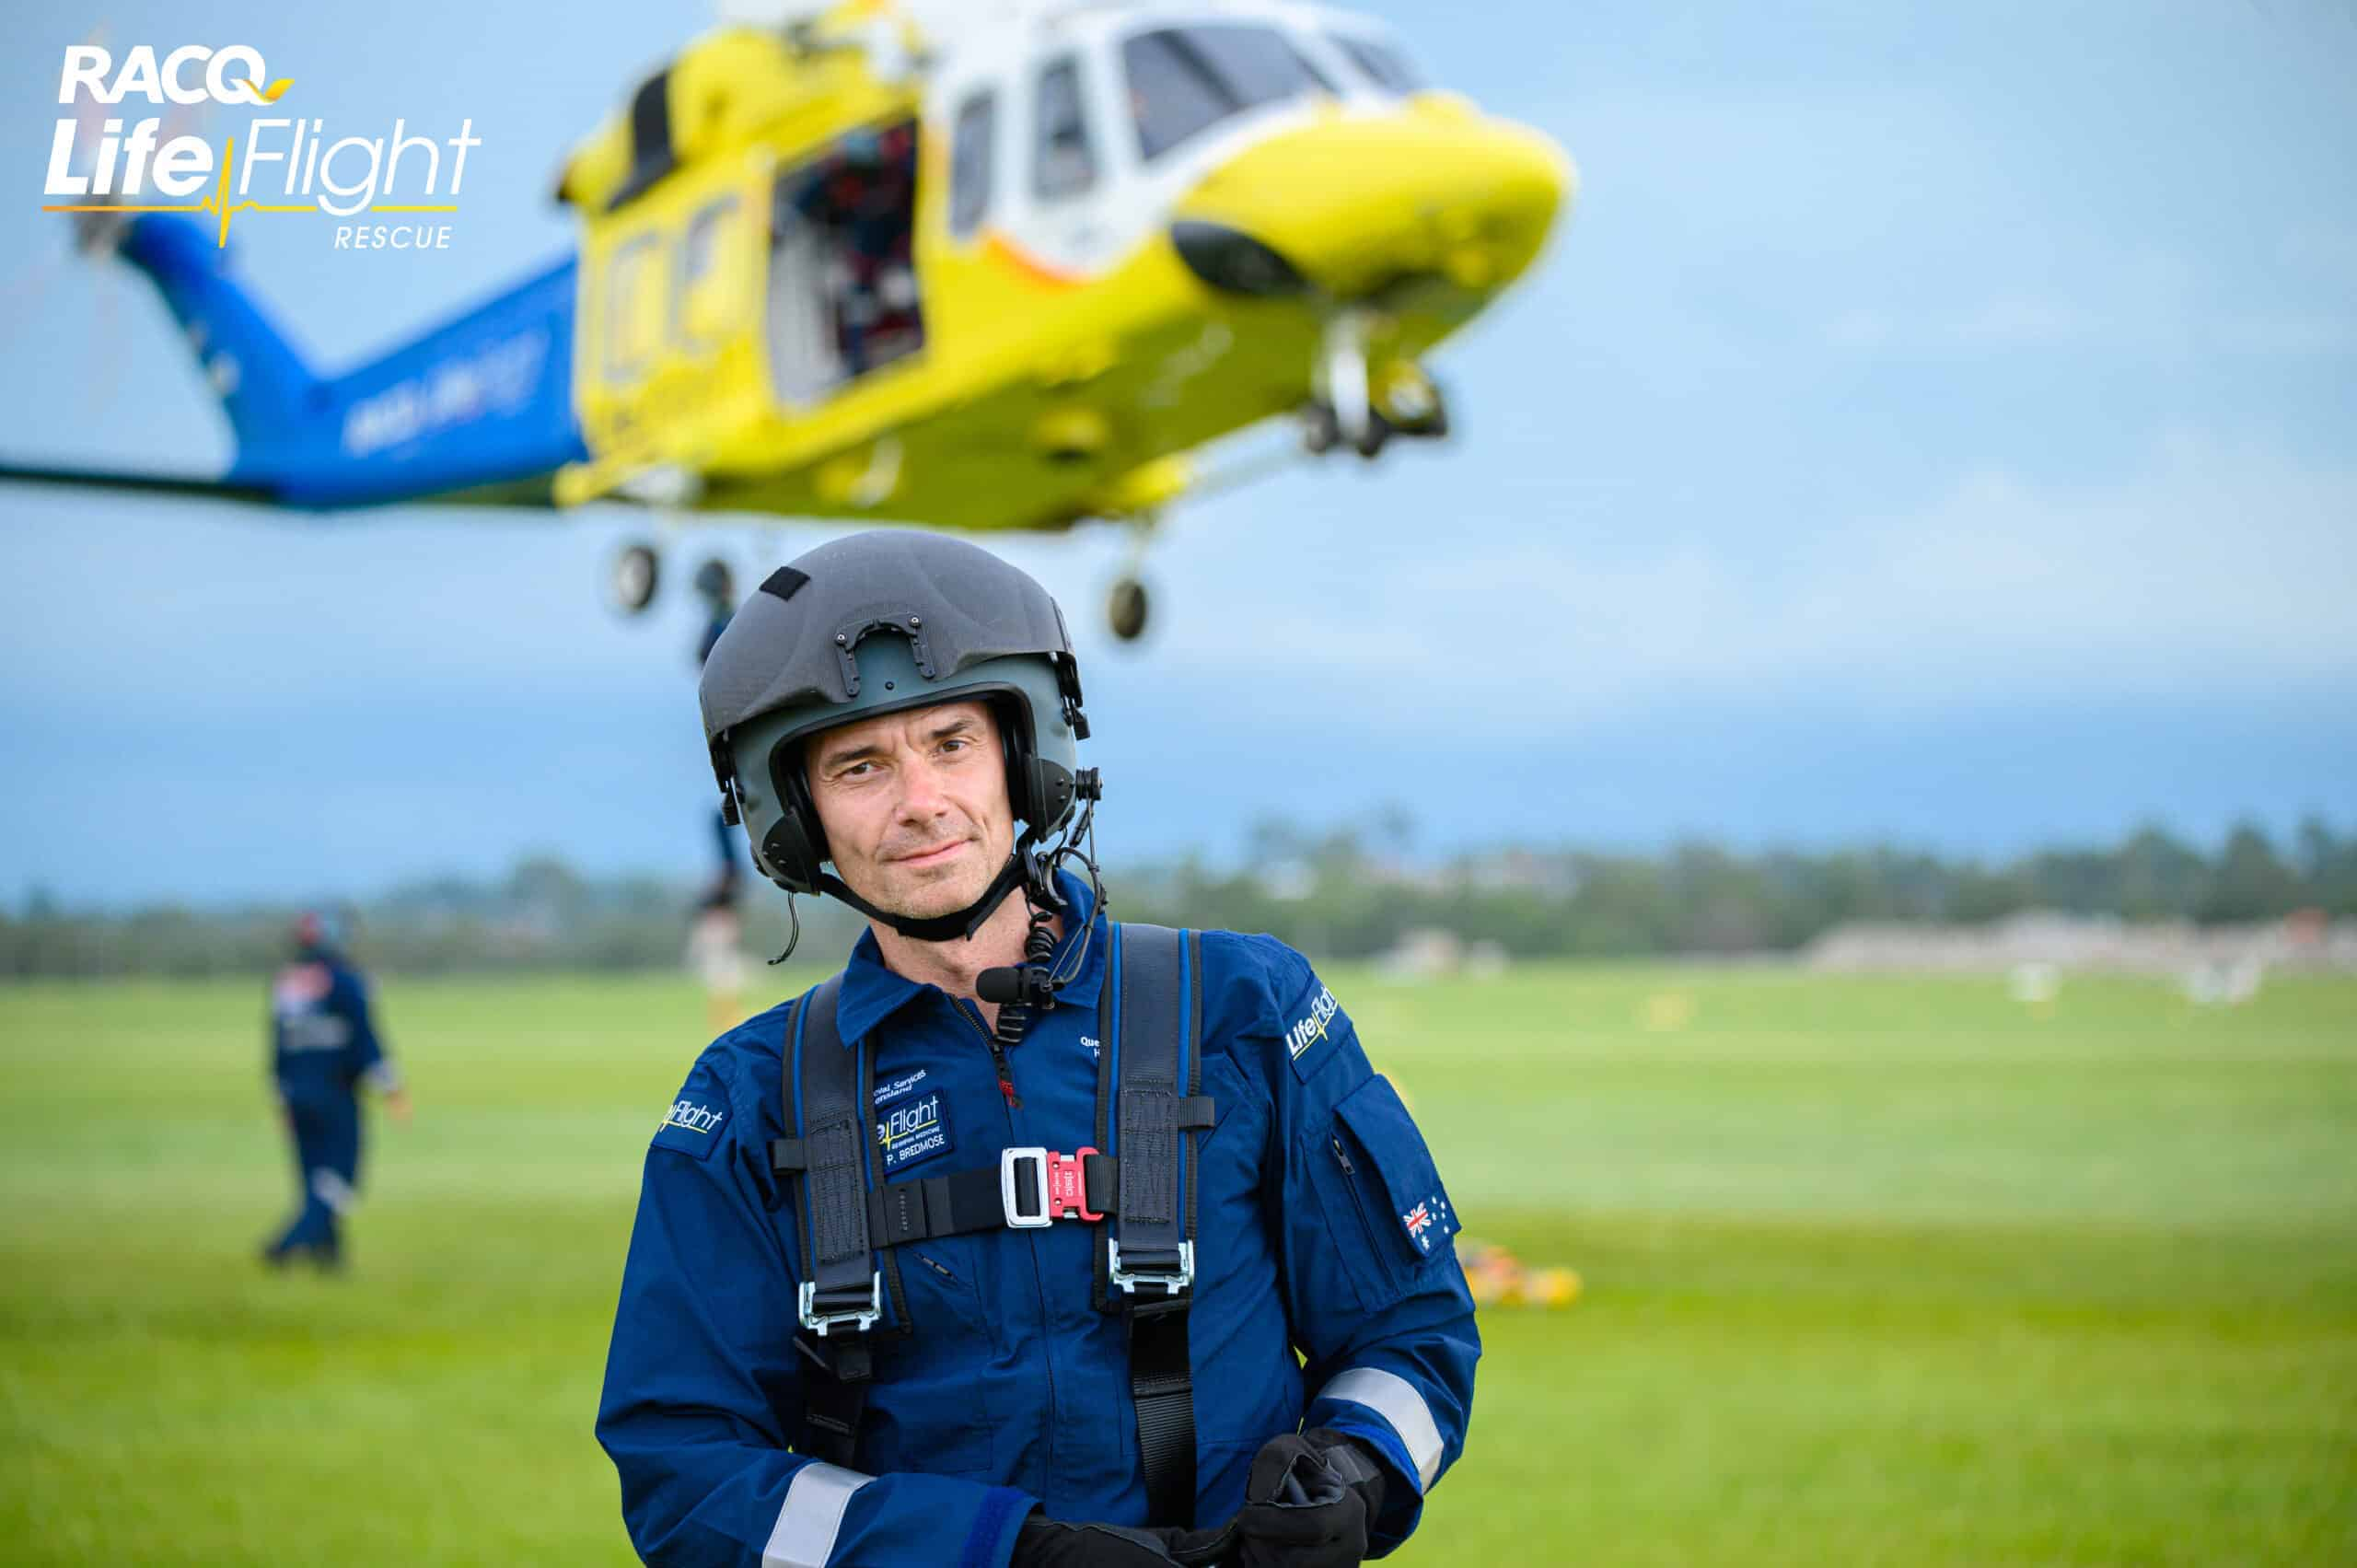 RACQ LifeFlight Rescue Critical Care Doctor talks COVID-19 preparations with Norwegian Air Ambulance Foundation